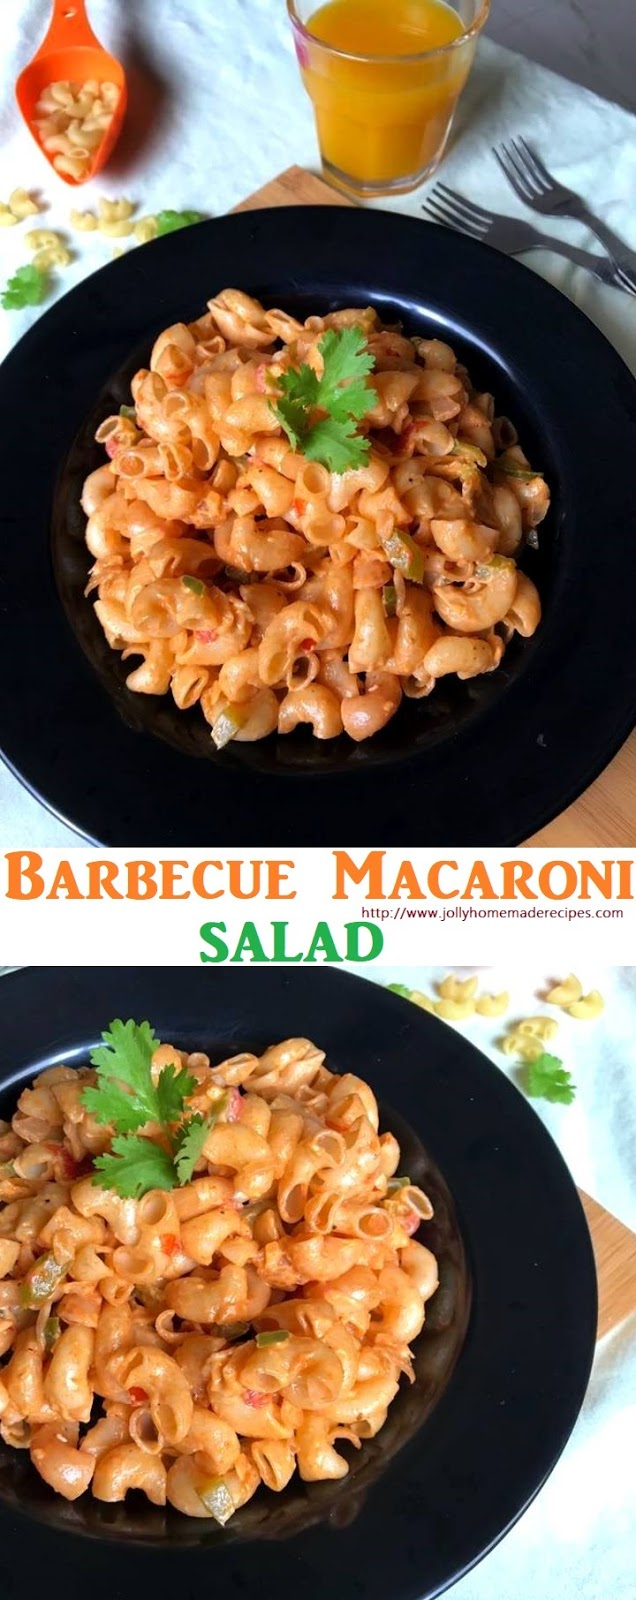 BBQMacaroniSalad_Pinterest_JHR